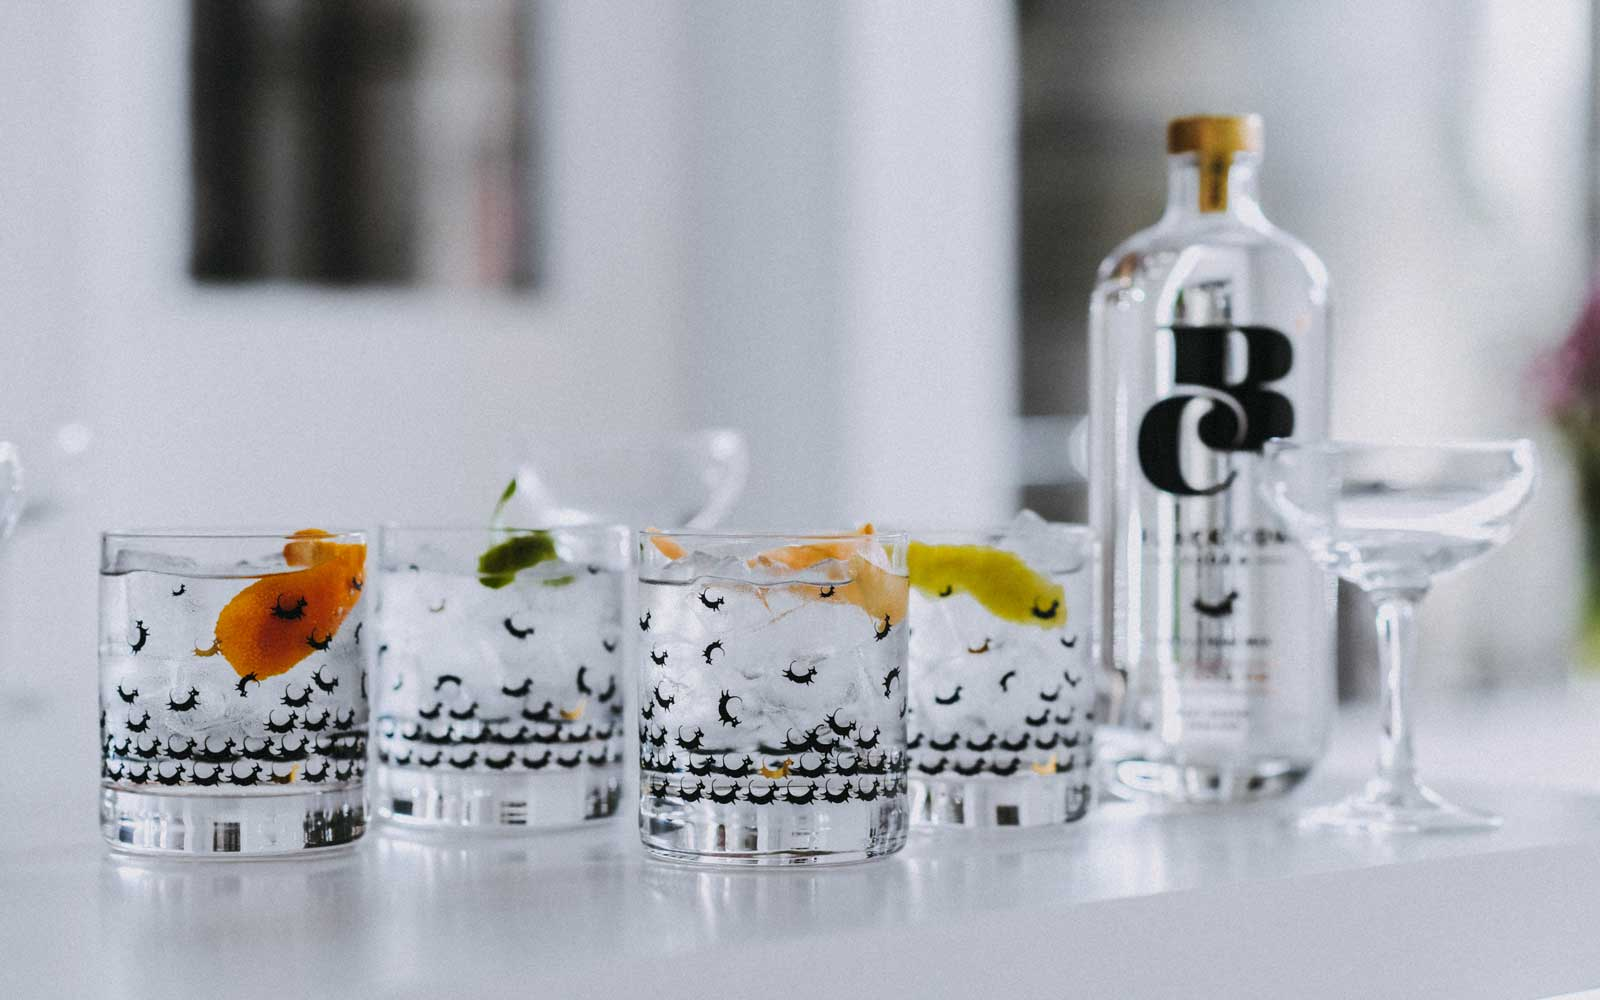 This English Farm Produces Cow's Milk Vodka You Can Now Buy in the U.S.